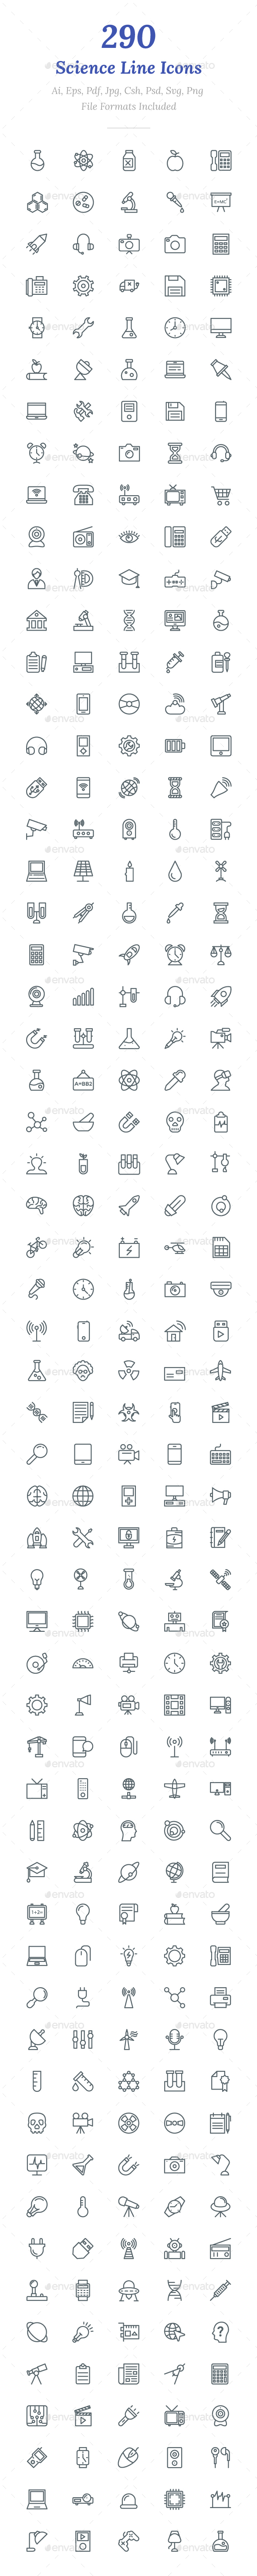 GraphicRiver 290 Science Line Icons 20922774